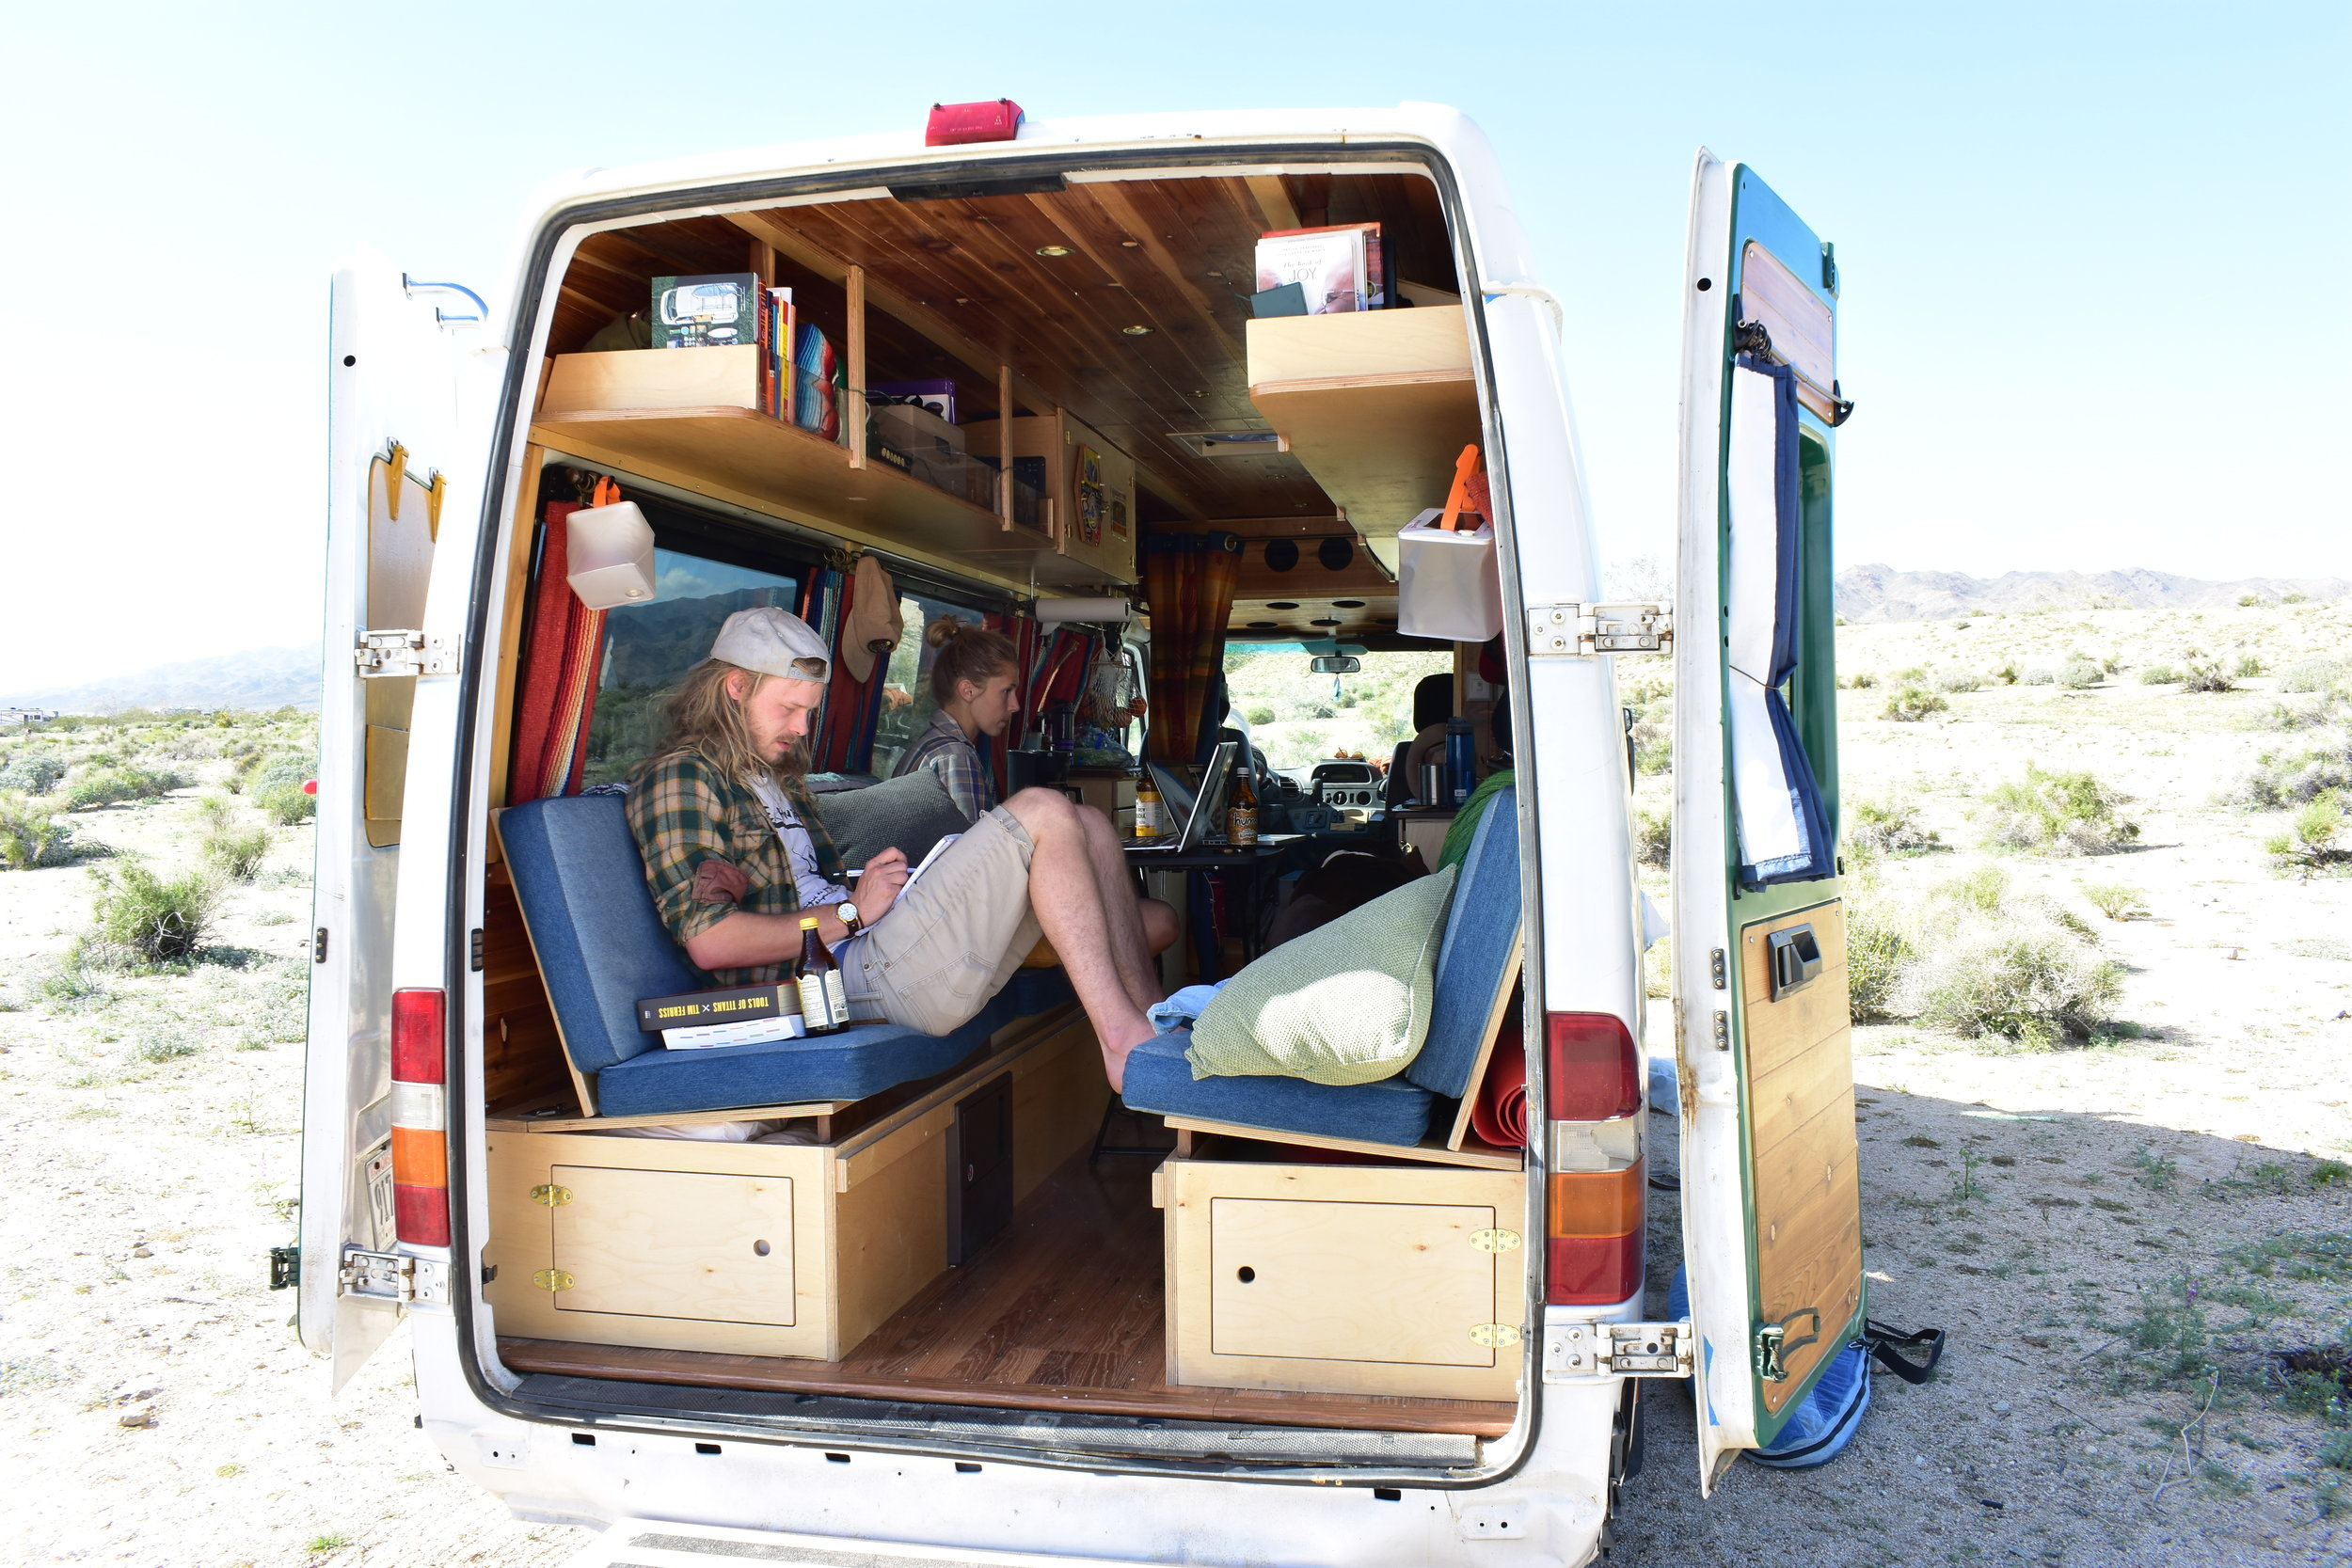 We stayed outside Joshua Tree NP for three weeks. We wrote our entire eBook there! Thanks J Tree, we owe you one.